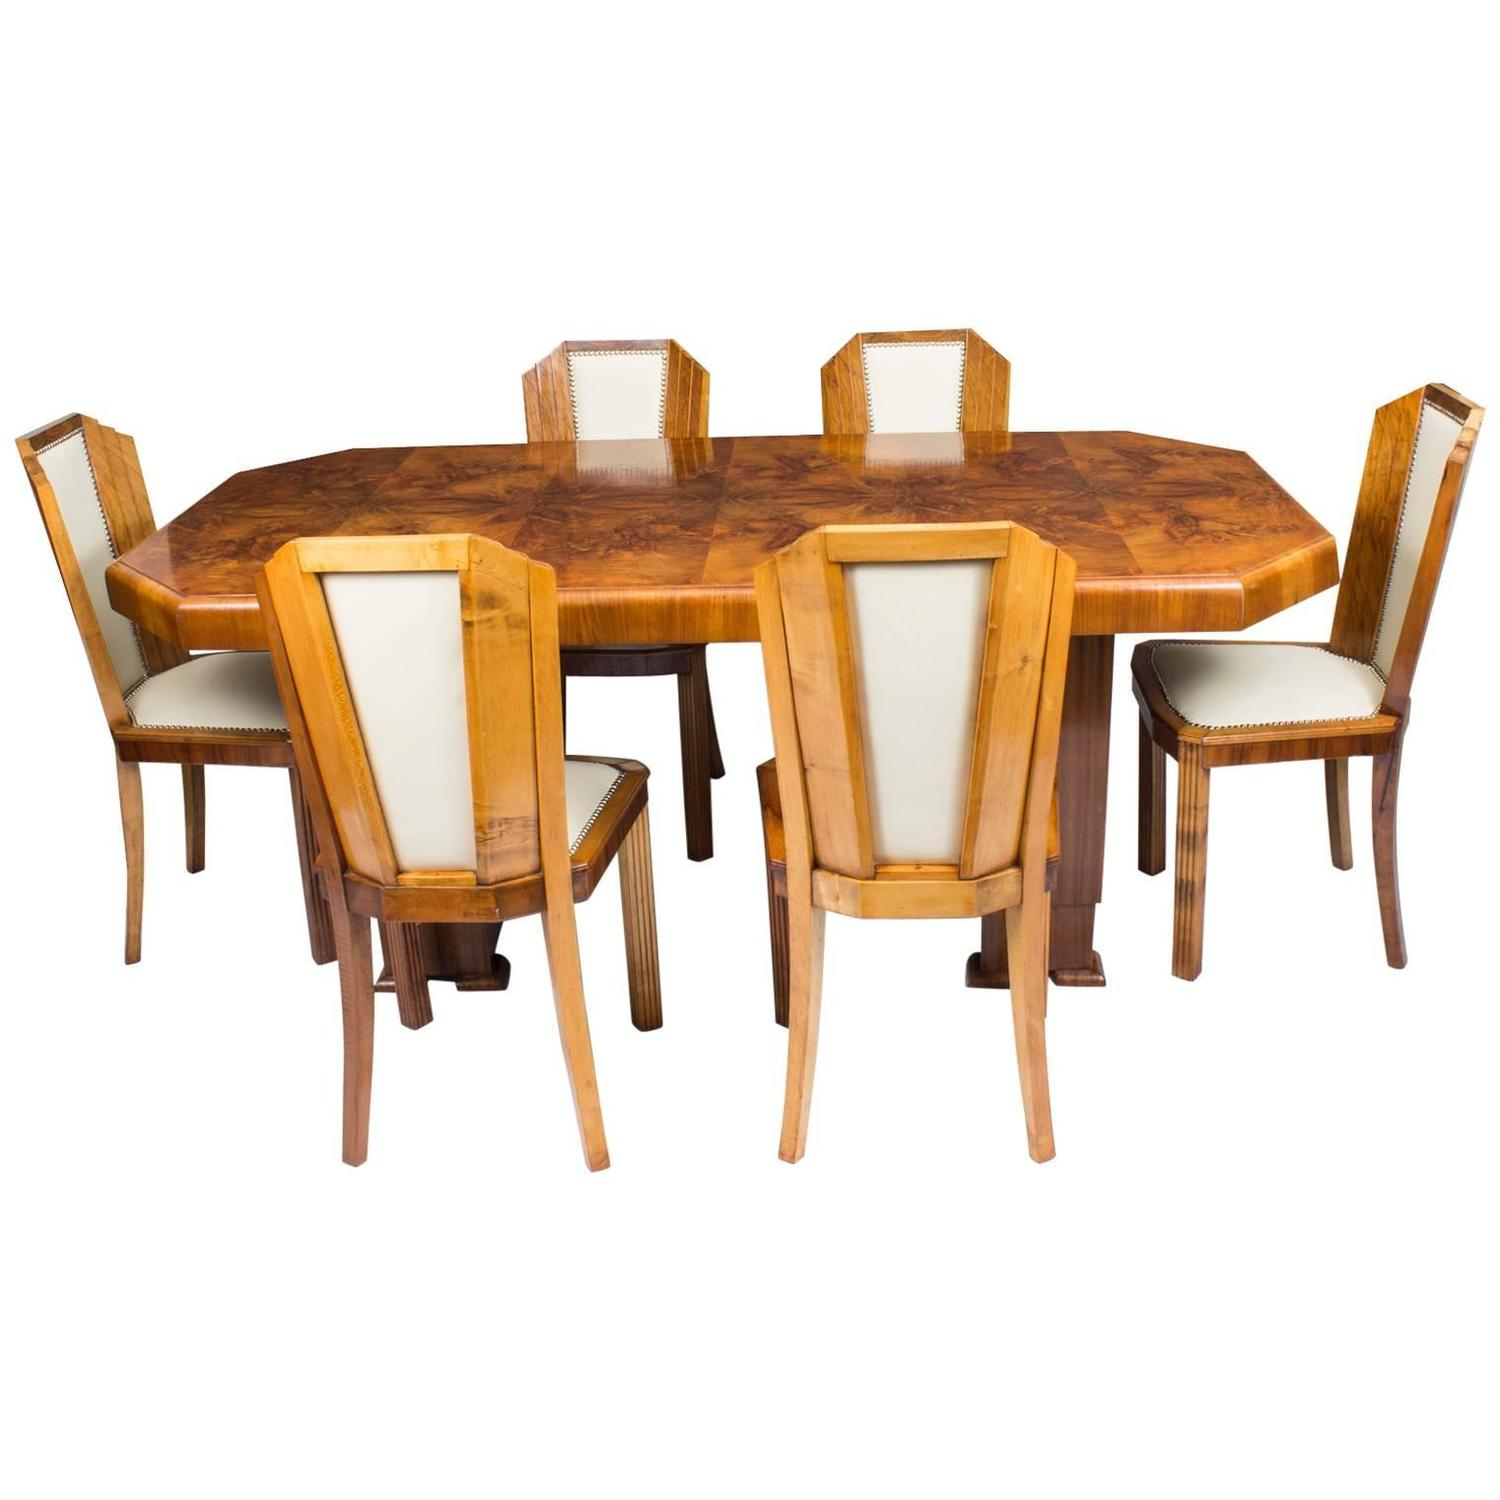 1930s Art Deco Burr Walnut Dining Table Six Chairs At 1stdibs